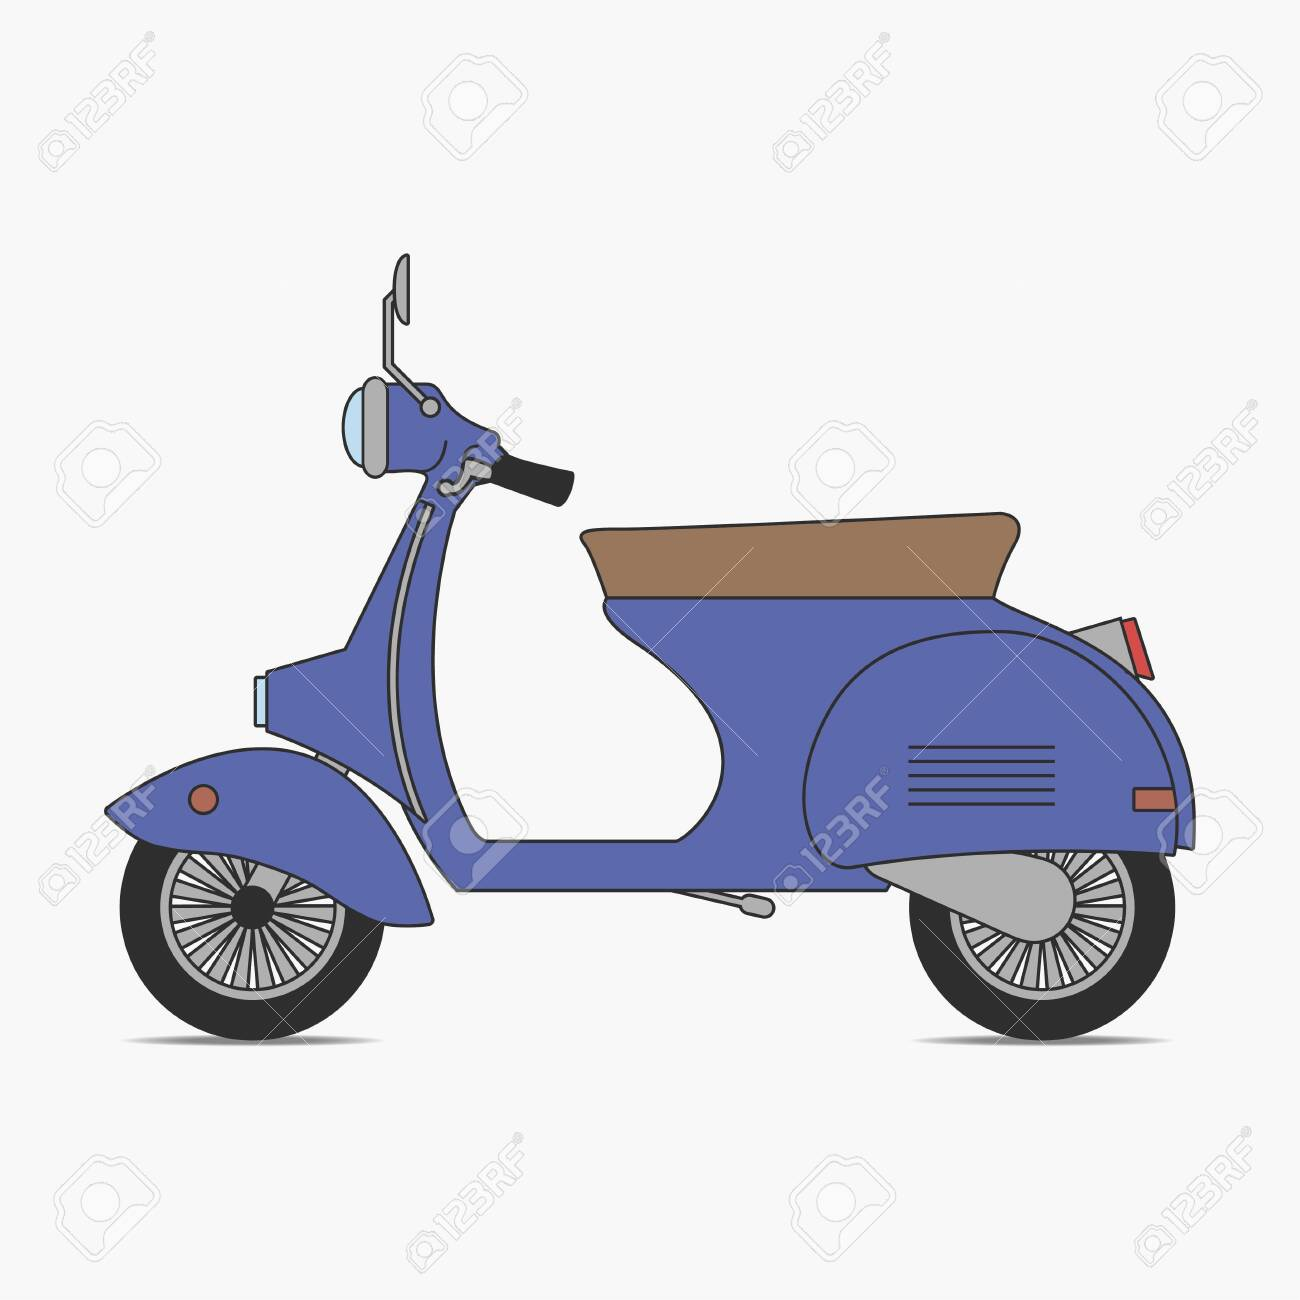 Vintage Scooter Moped Little Retro Motorcycle Two Wheeled Royalty Free Cliparts Vectors And Stock Illustration Image 125470920